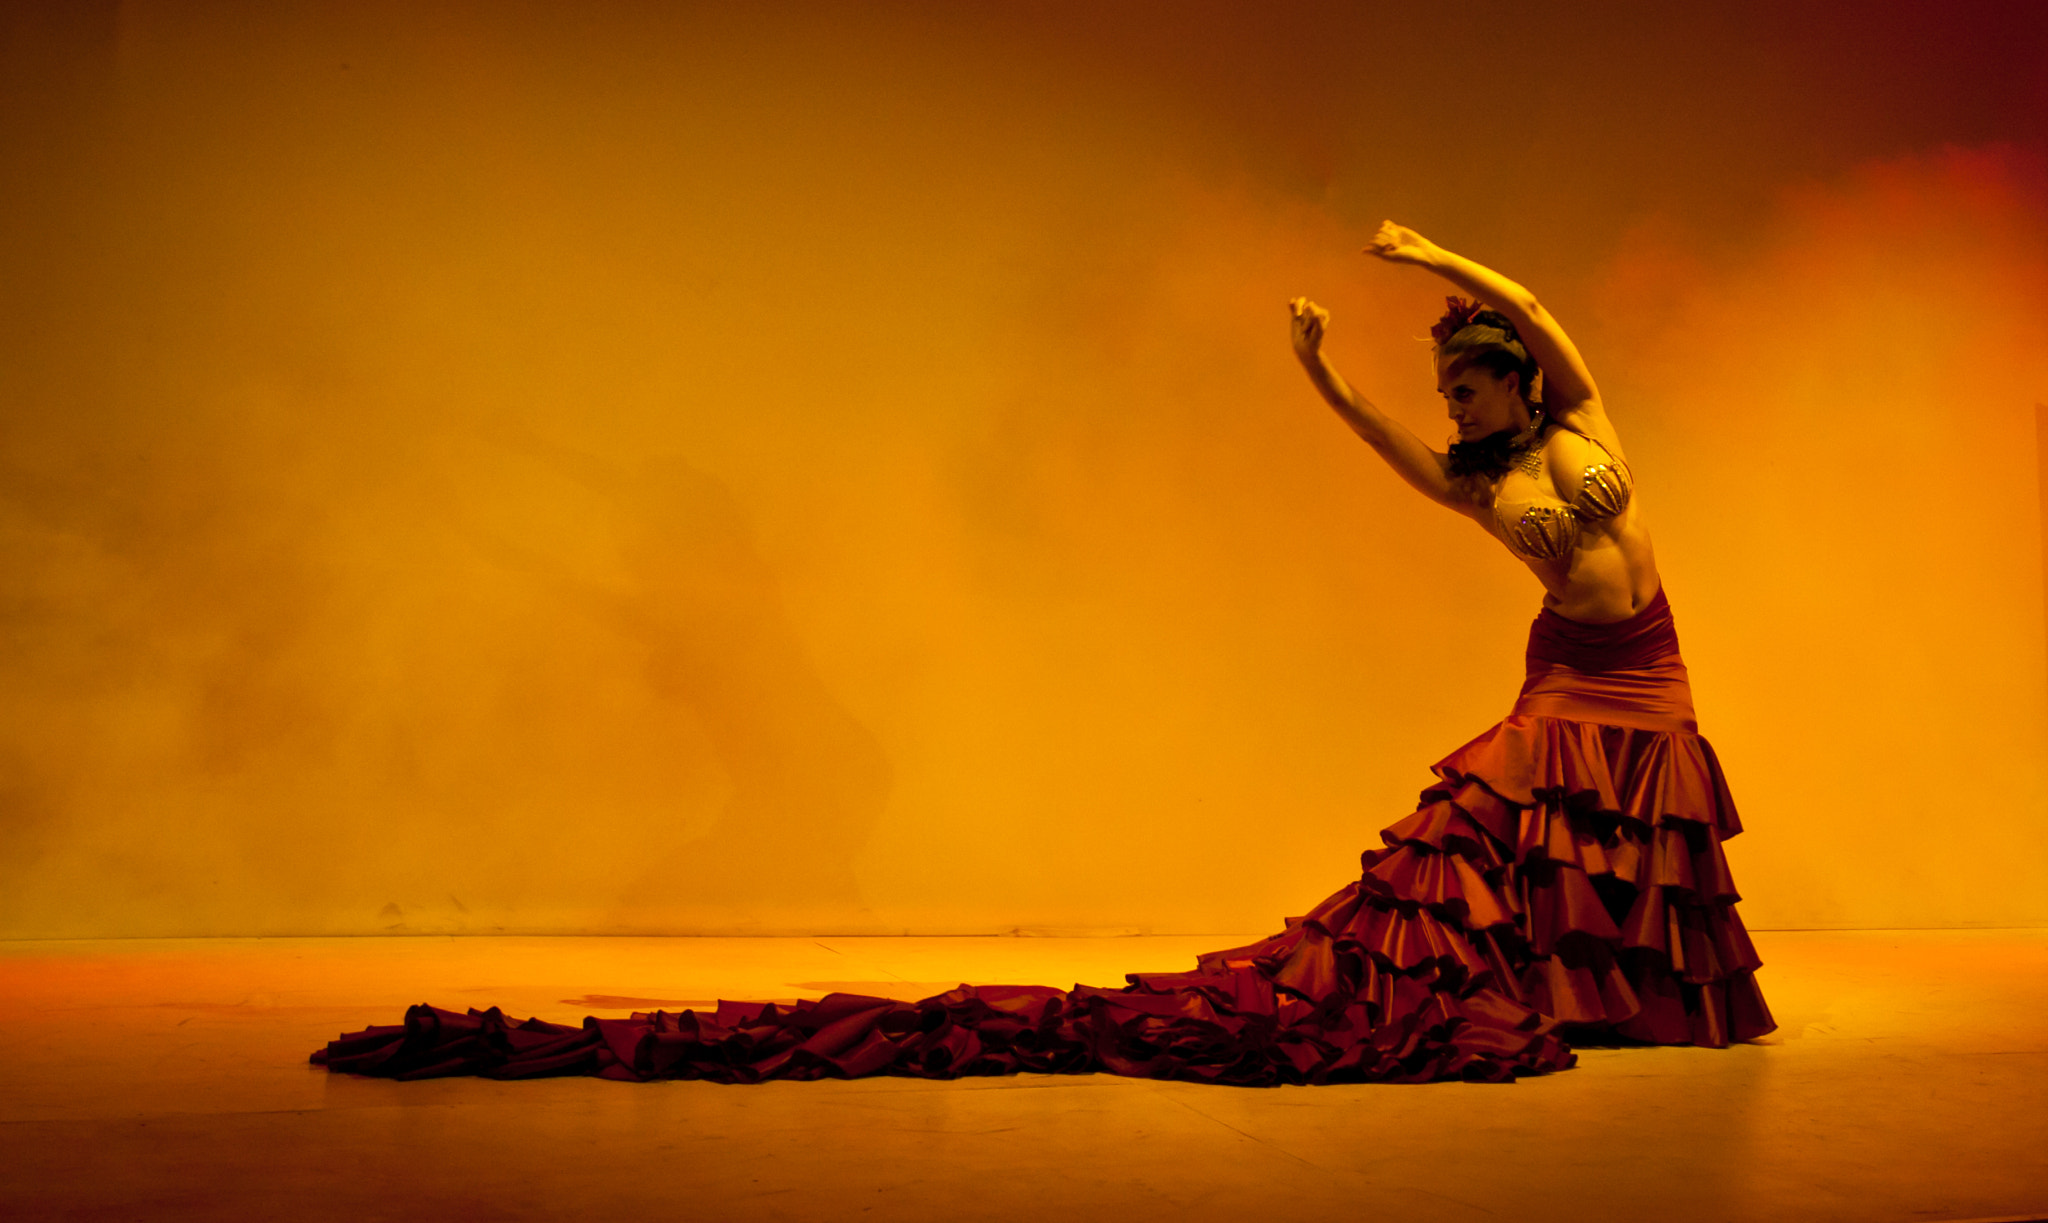 Photograph Flamenco 2 by Serban Tunde on 500px